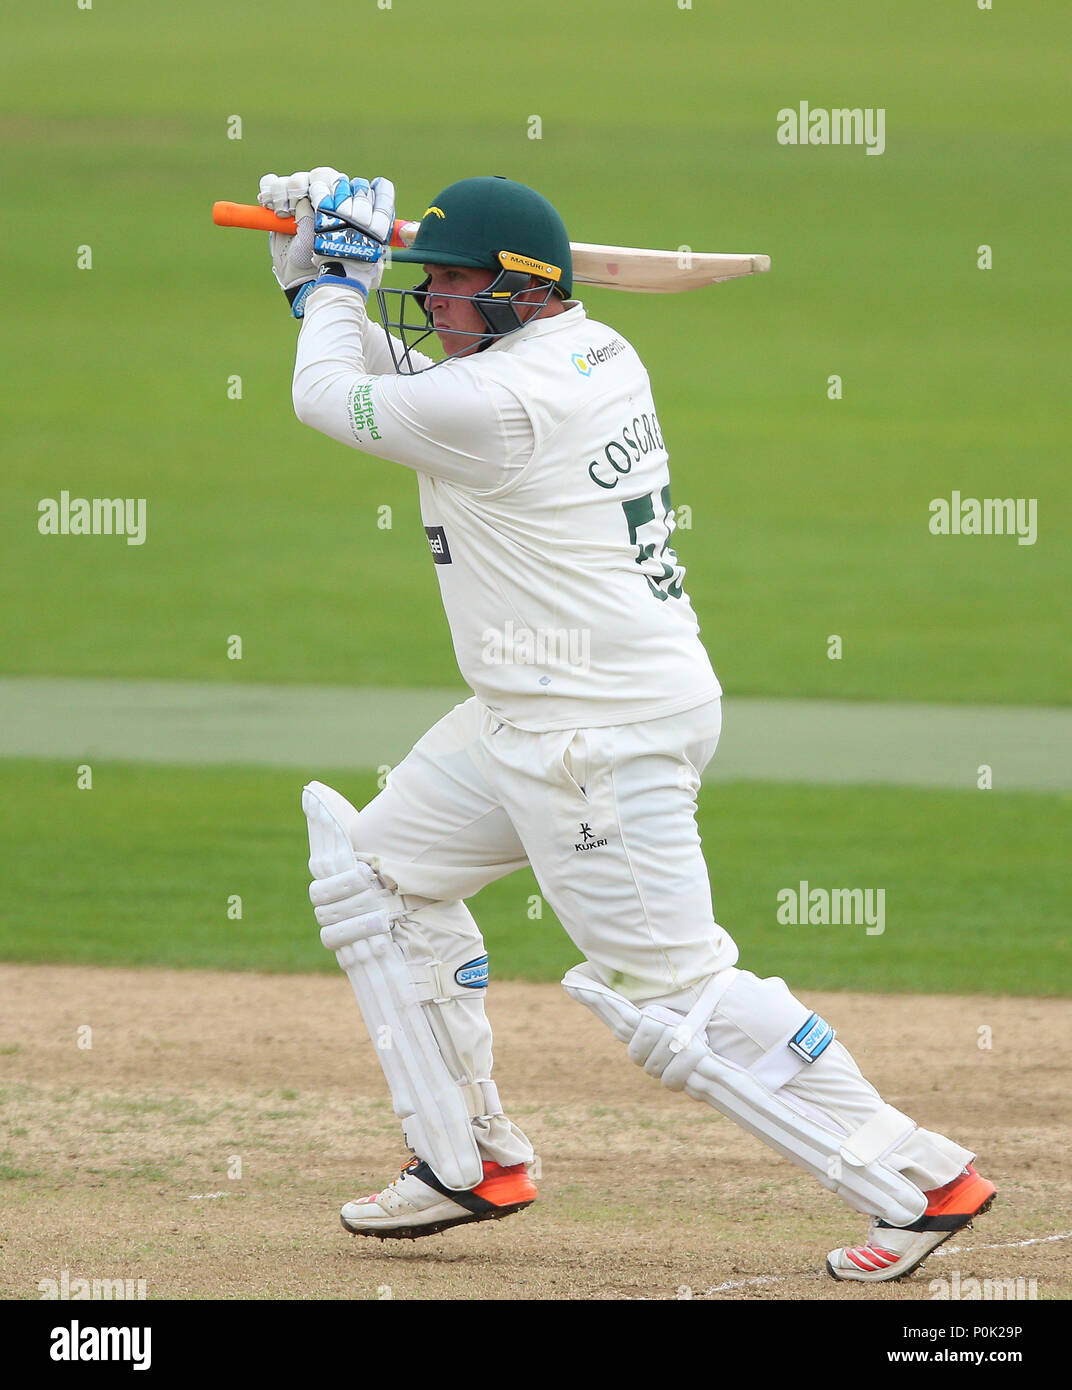 Leicestershire's Mark Cosgrove during day one of the Specsavers County Championship division two match at The County Ground, Northampton. - Stock Image